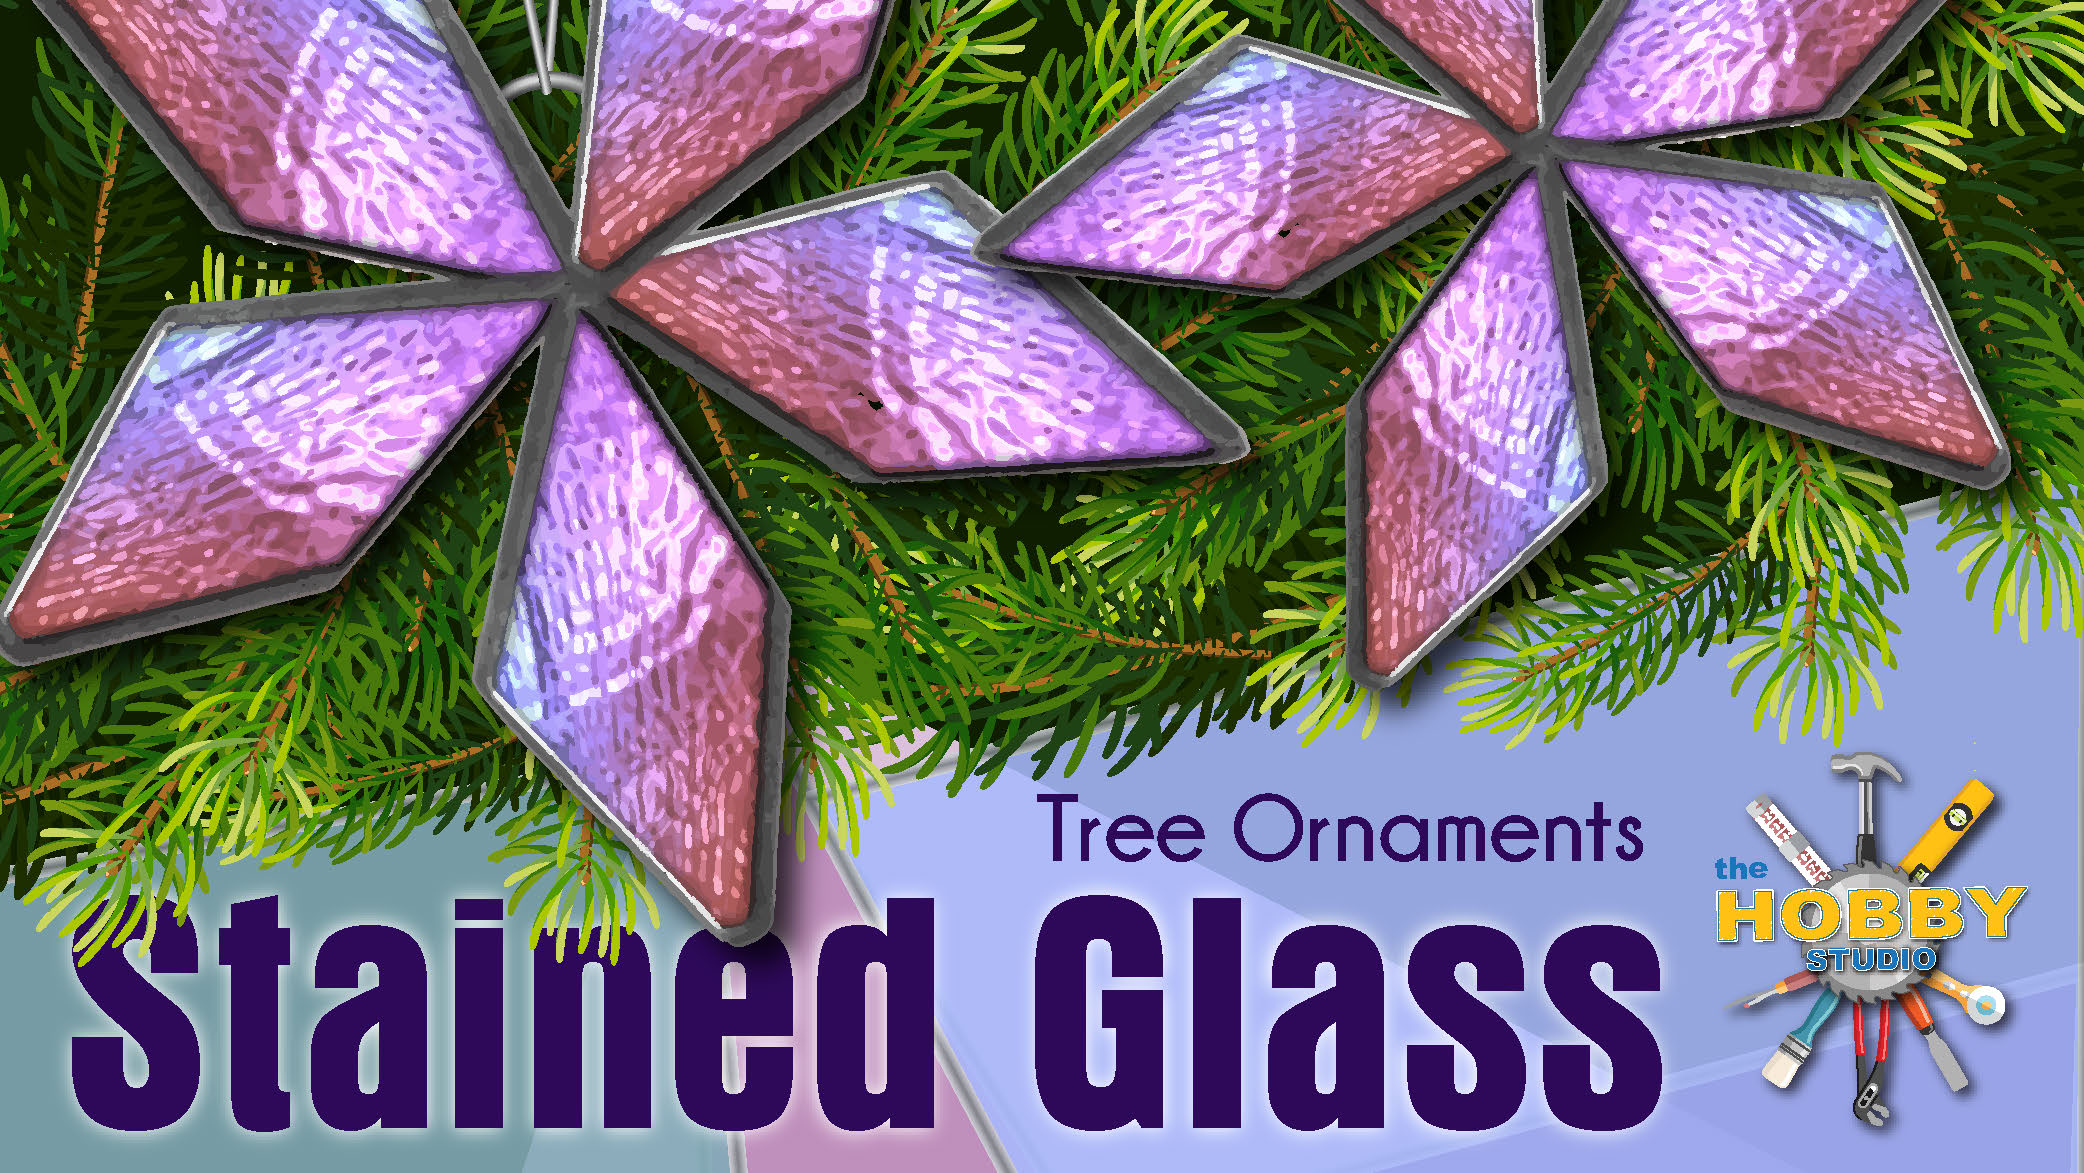 Stained Glass Tree Ornaments